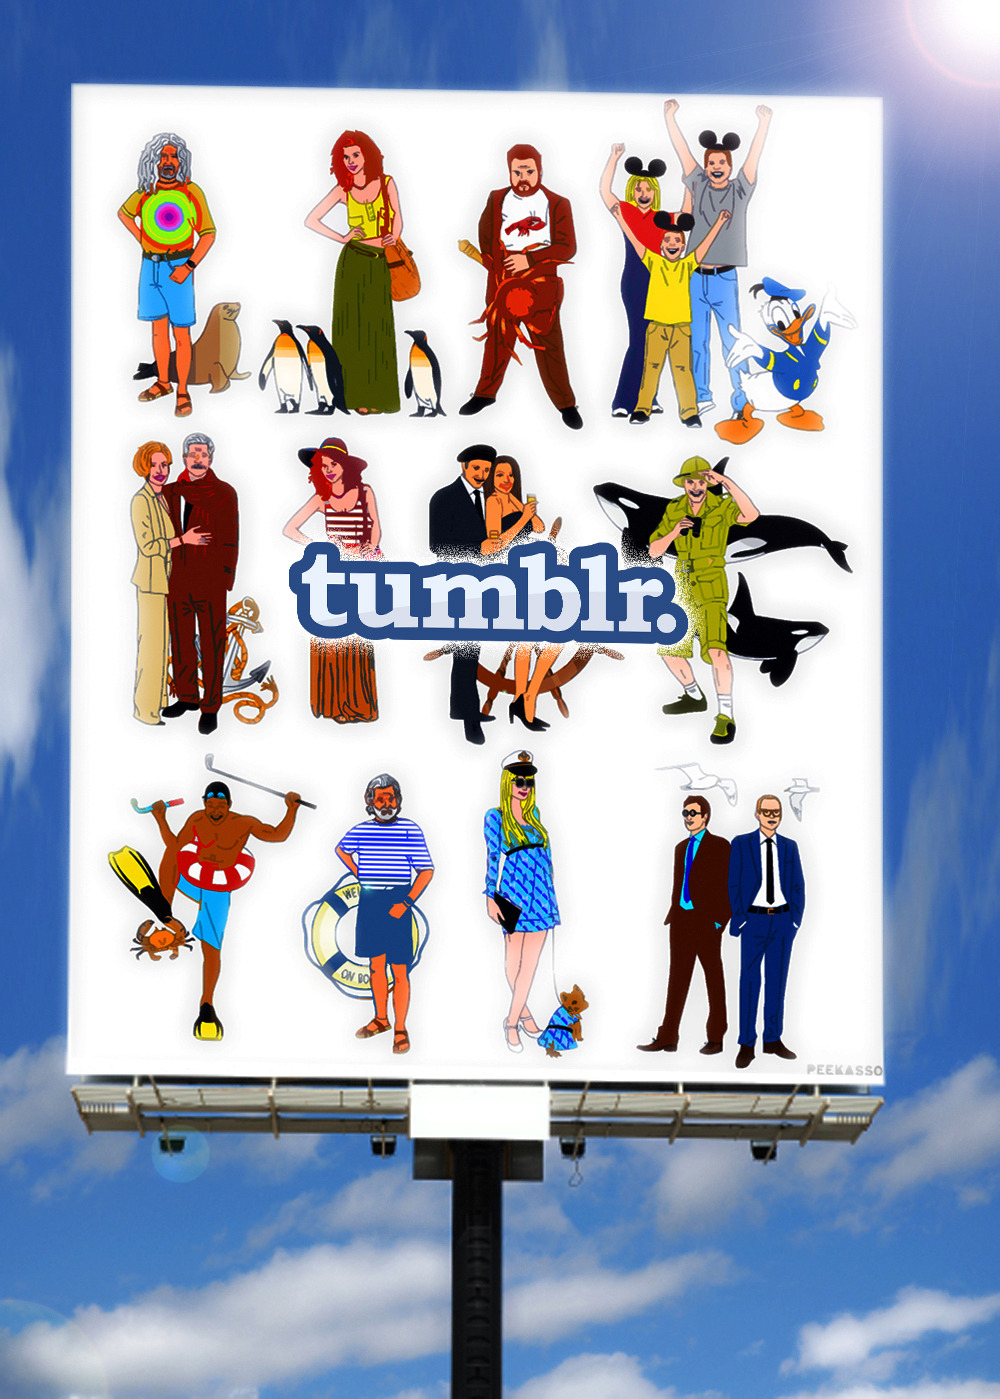 peekasso:  Tumblr is so addictive because it's simulating human contact.